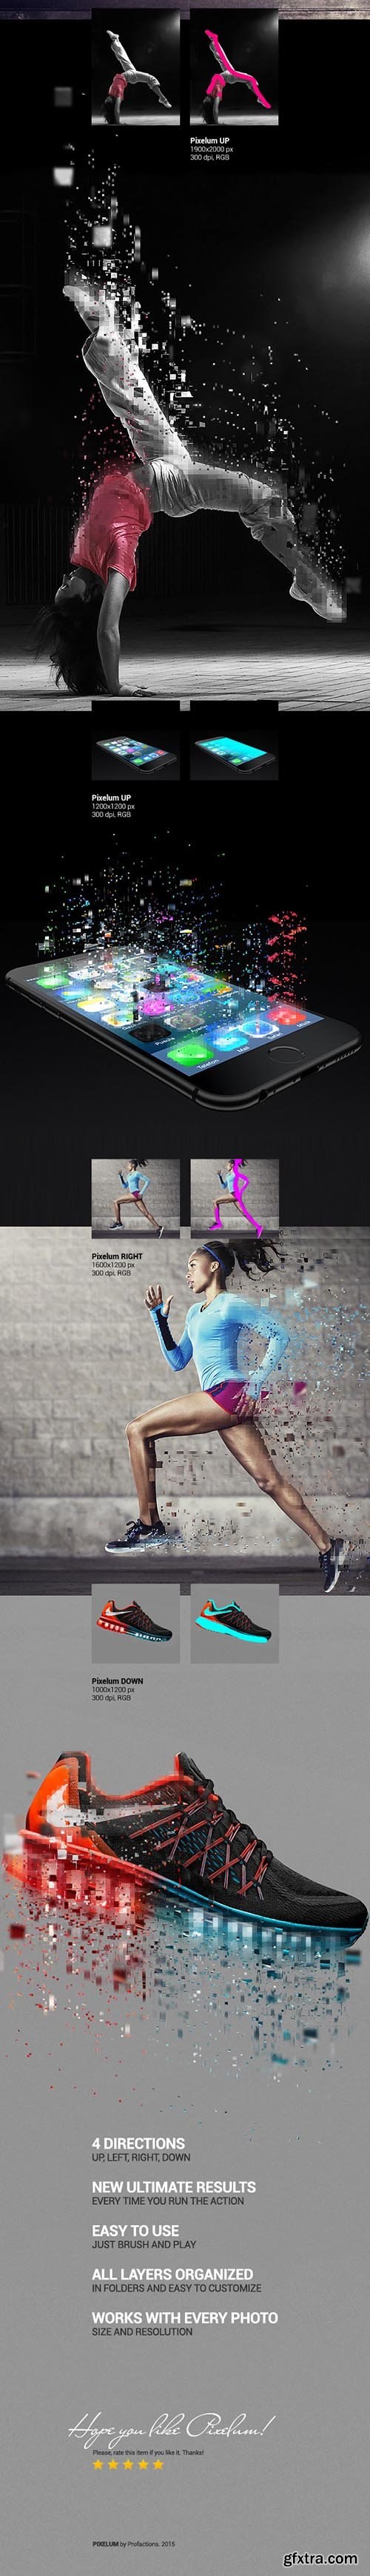 GraphicRiver Pixelum PS Action 10682693